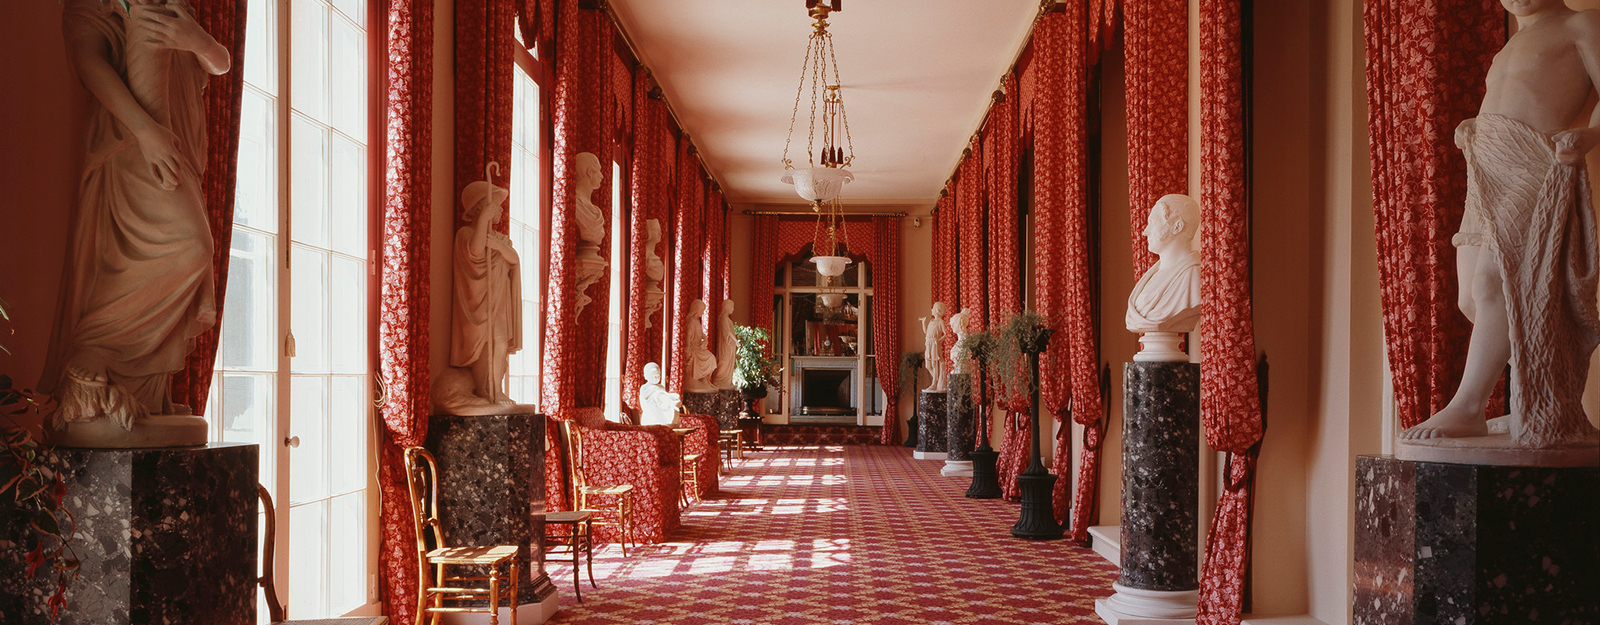 The Colonnade at Frogmore House.